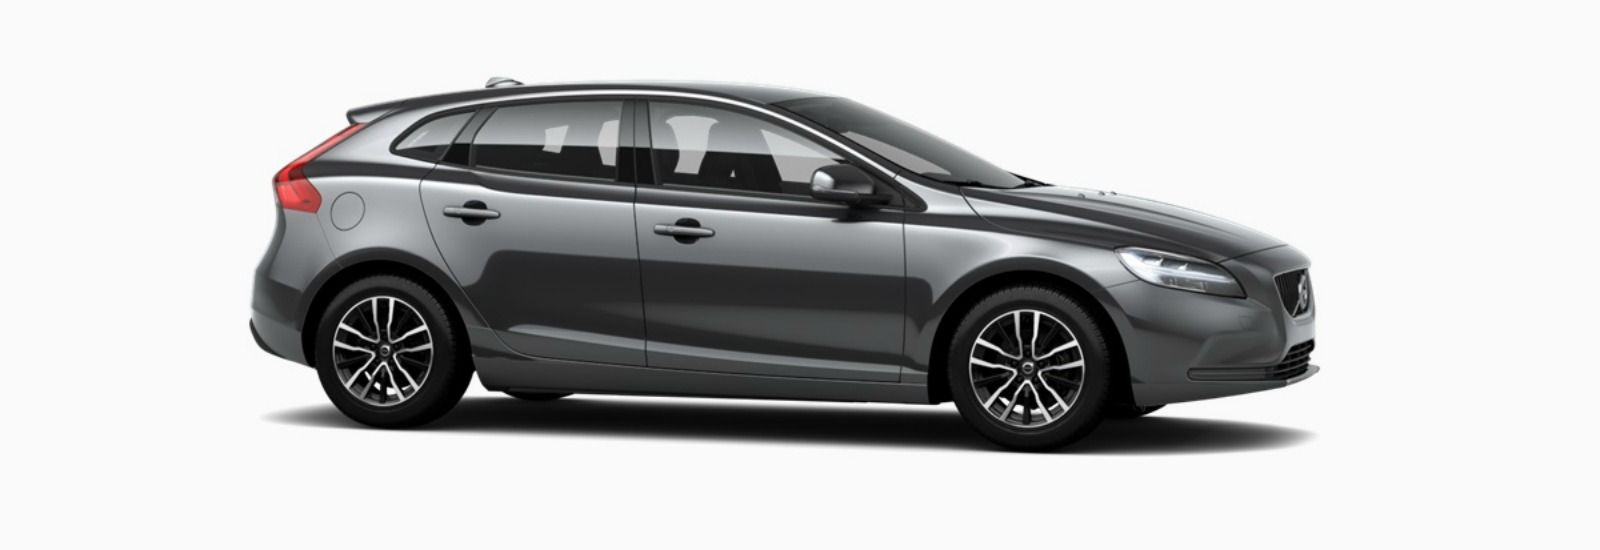 Colour a car - It Looks Good On The V40 And Will Hide Dirt Well But It May Be Harder To Shift On The Used Car Market Than A More Conventional Colour